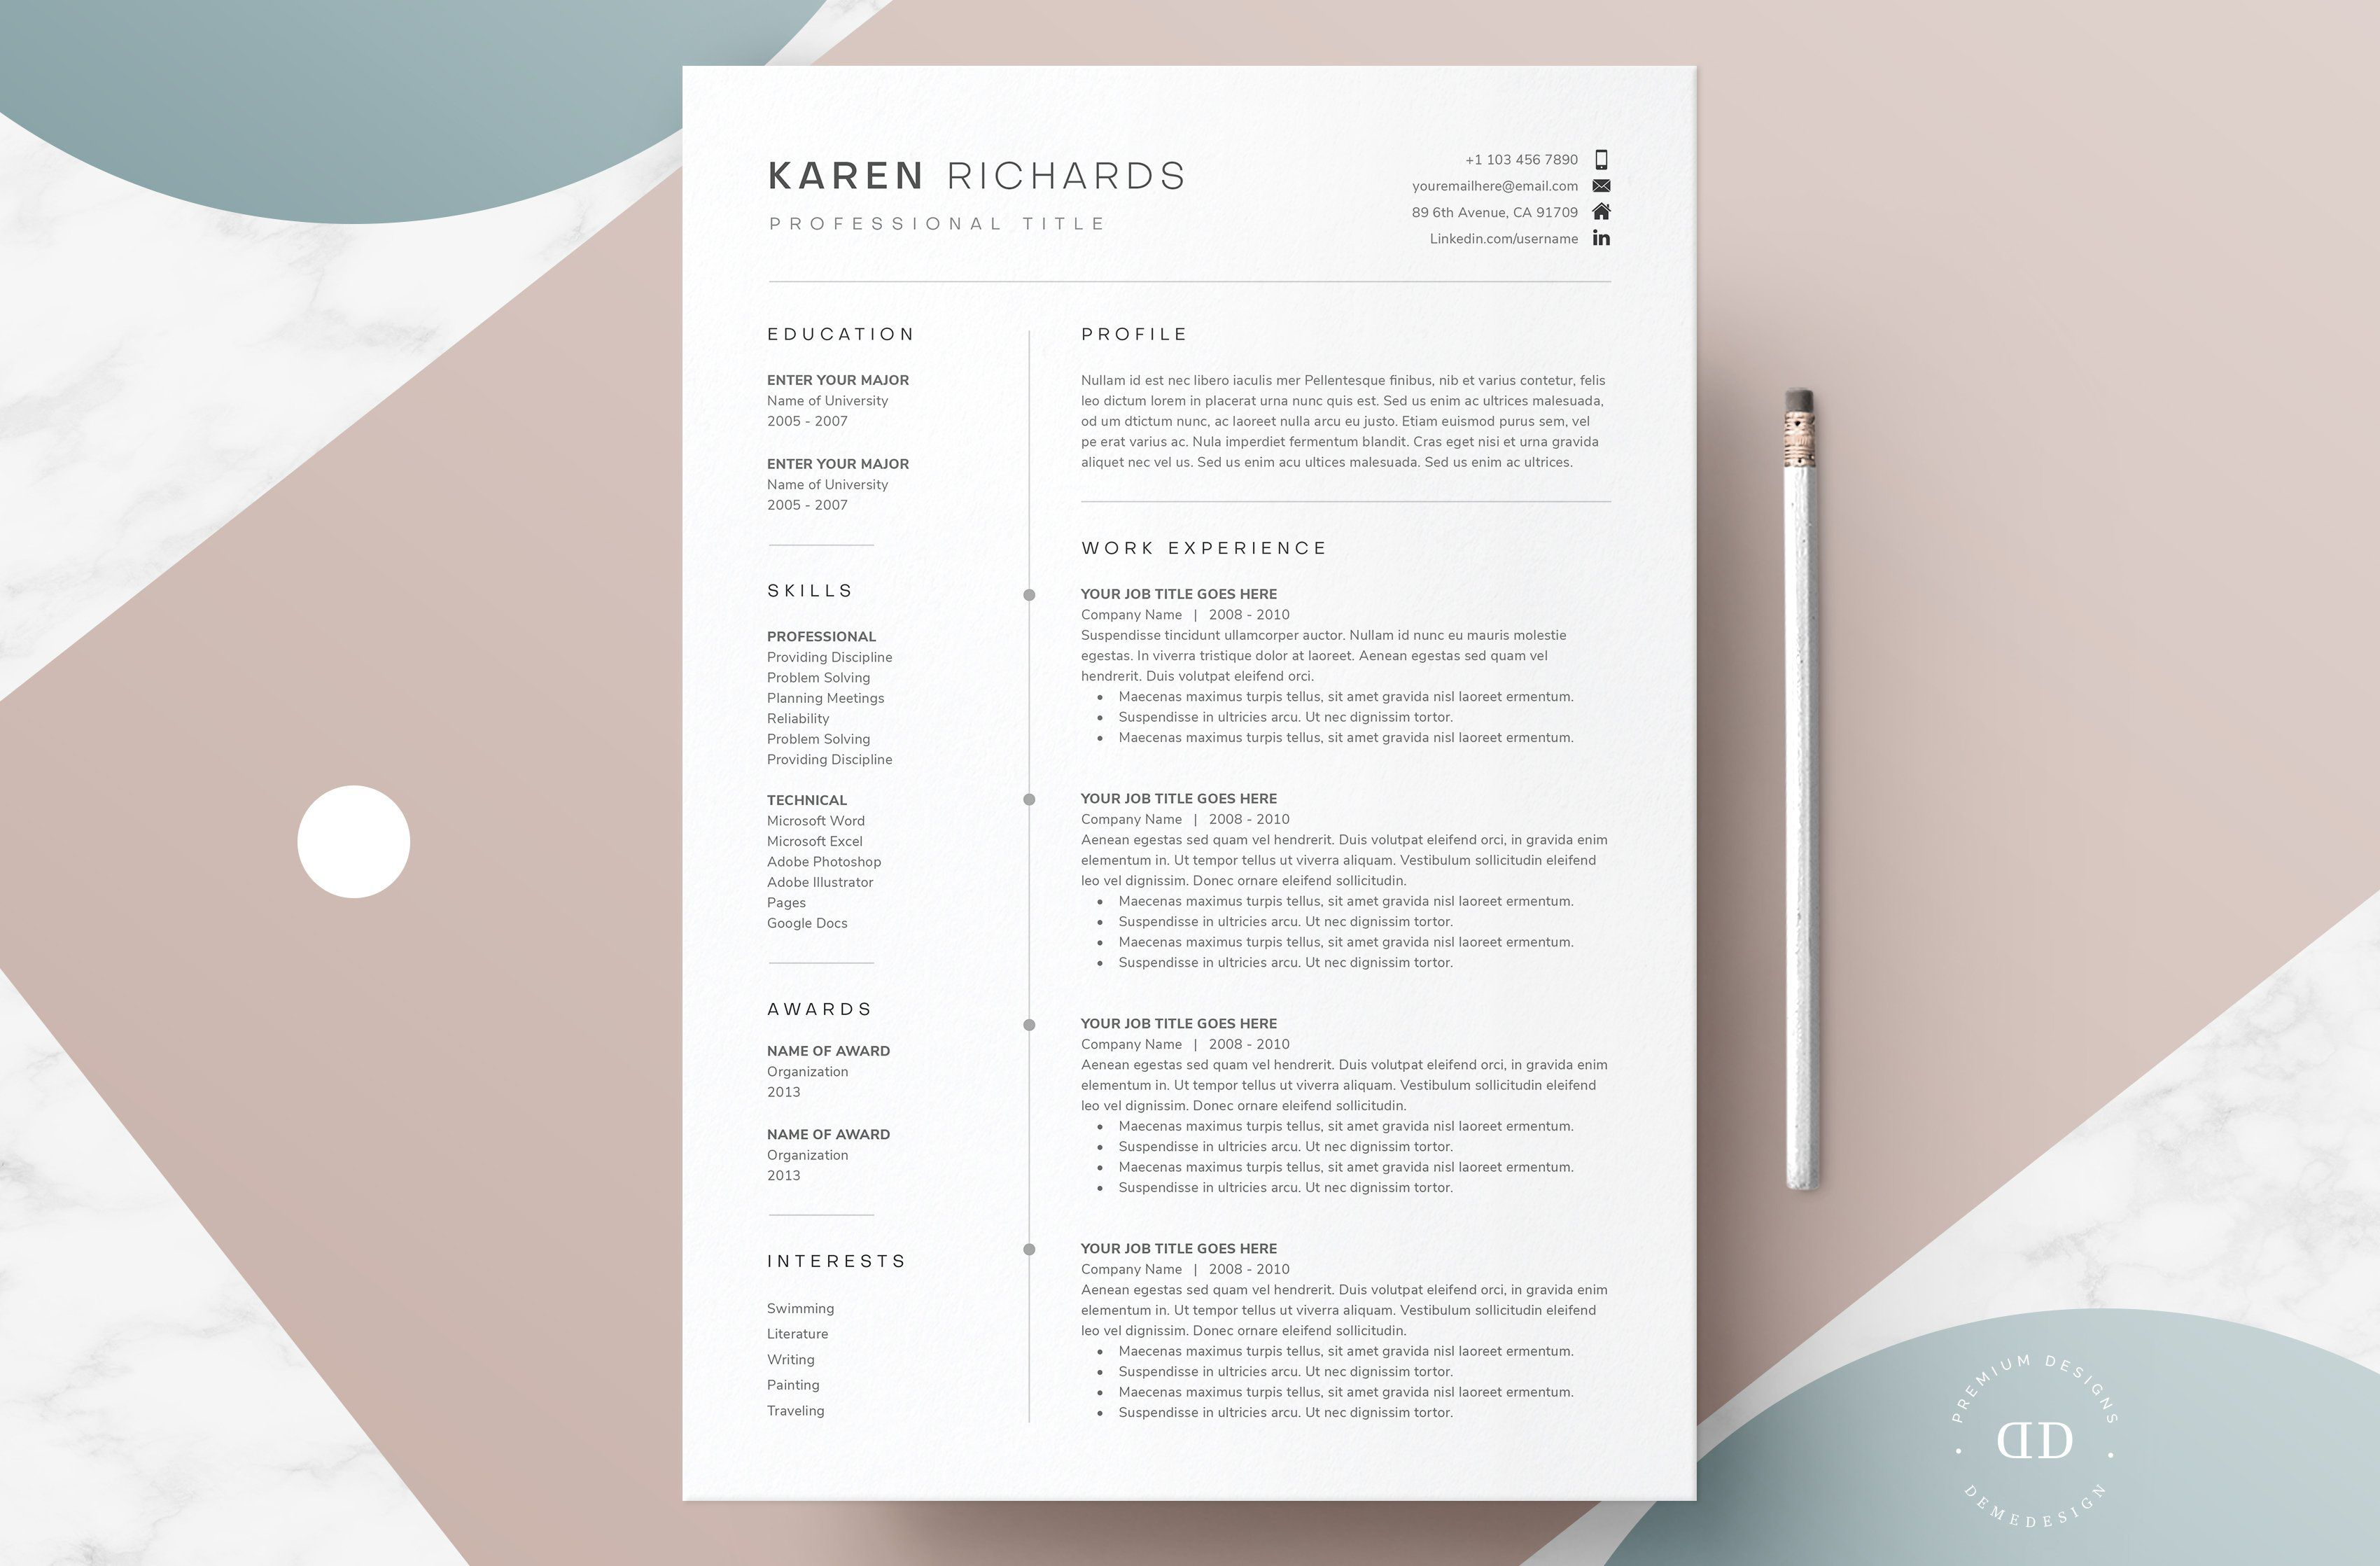 008 Excellent 1 Page Resume Template Highest Clarity  Templates One Basic Word Free Html DownloadFull